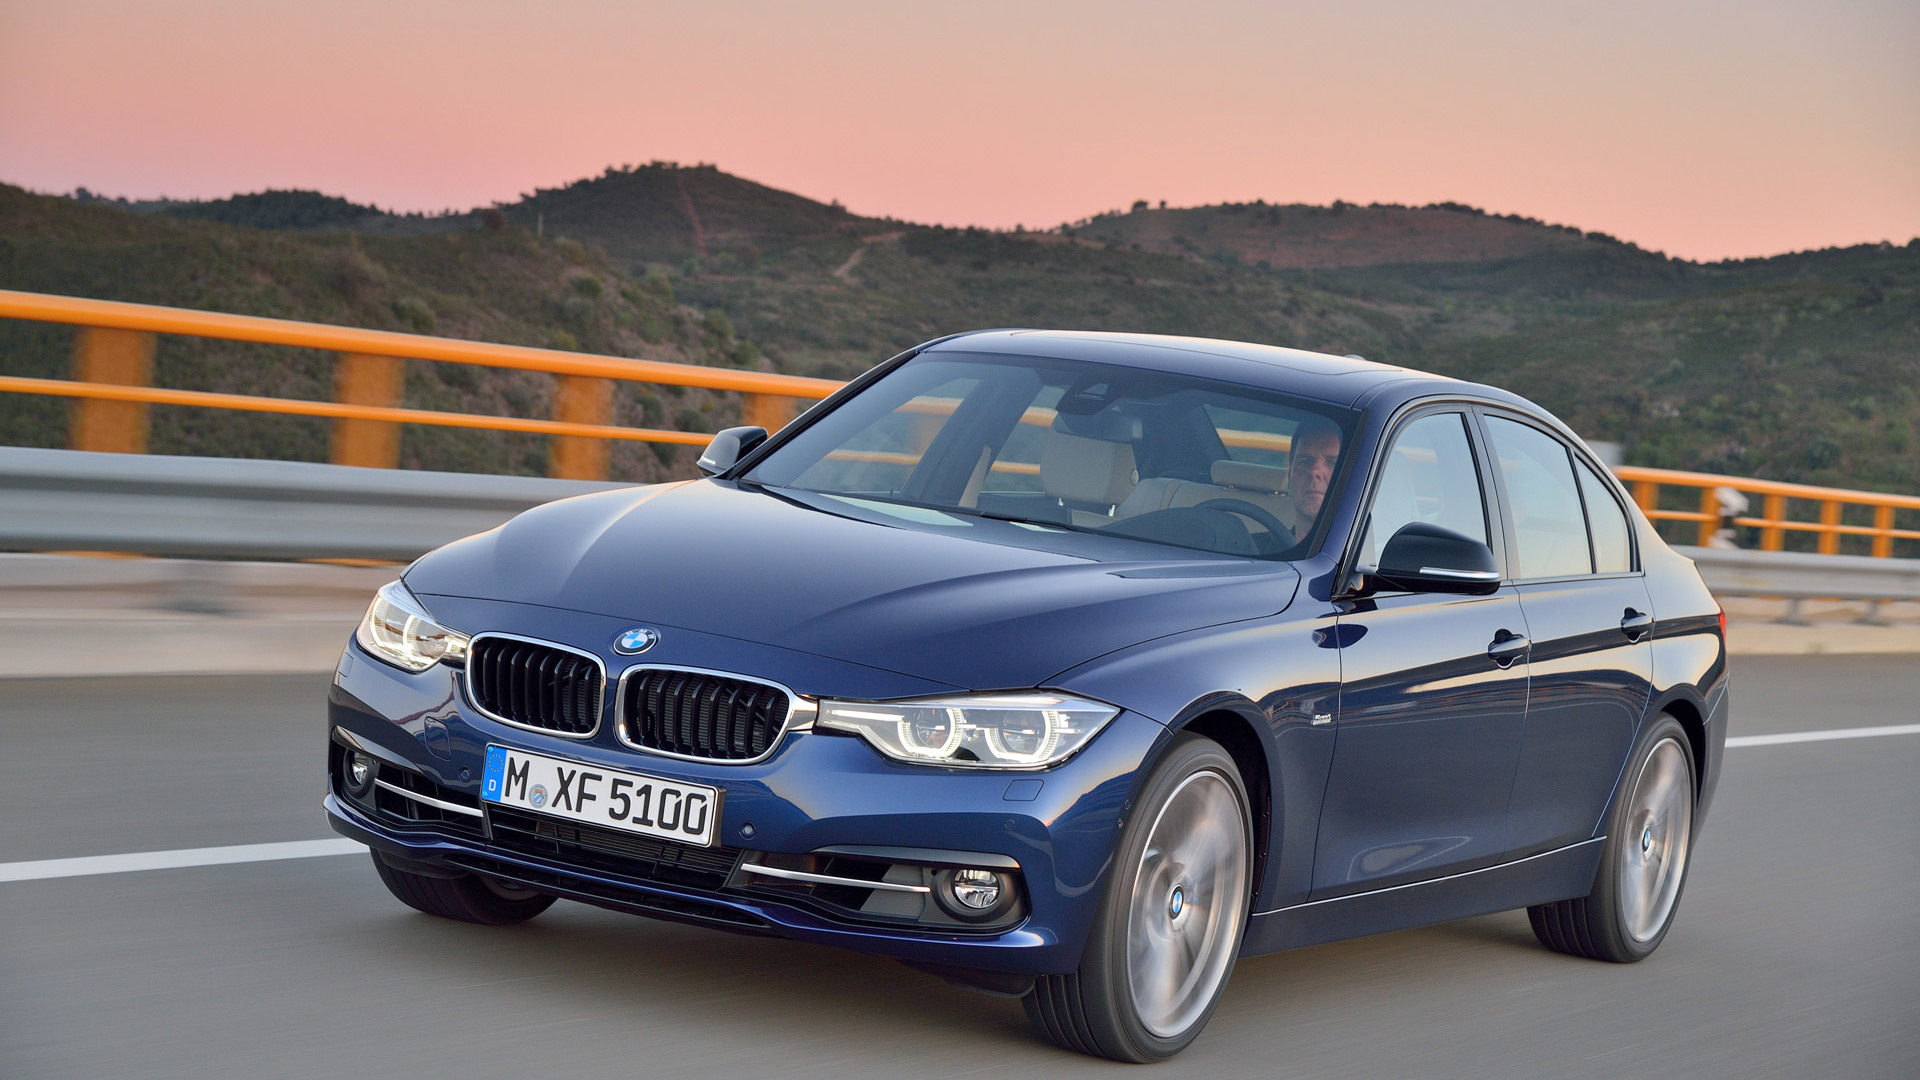 2016 Bmw 3 Series Benefits From Significant Updates Under The Skin